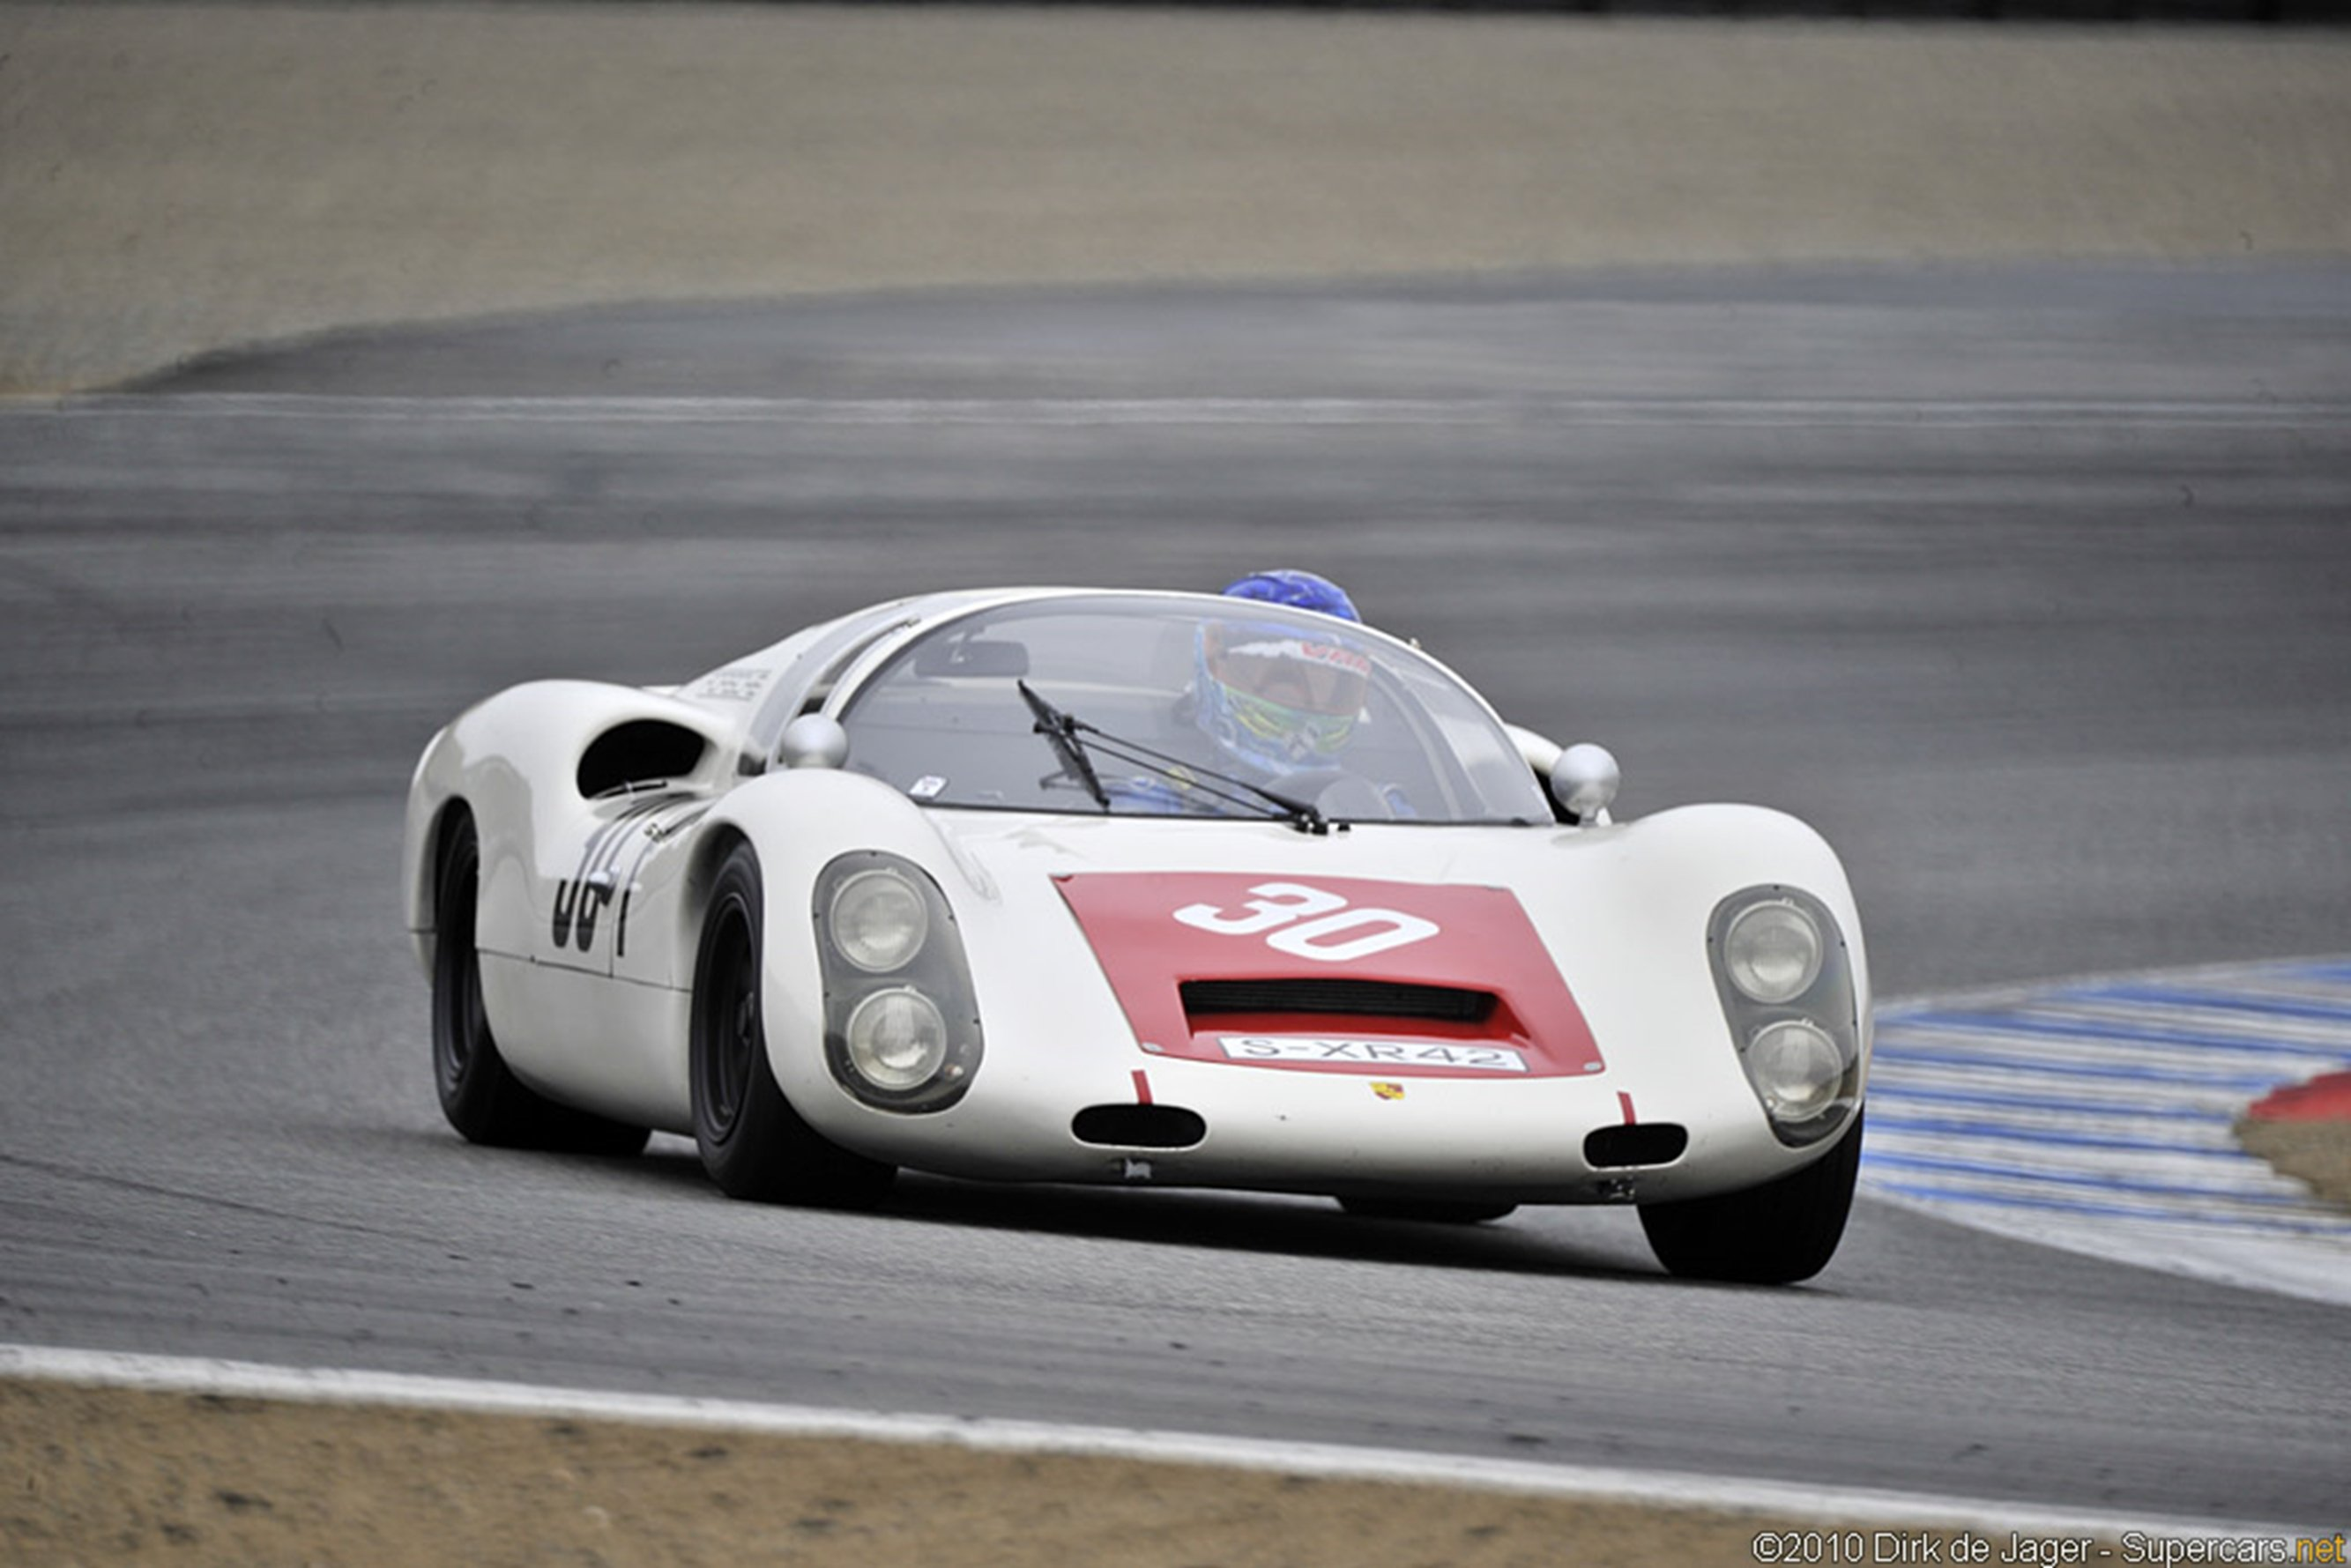 Race Car Racing Porsche Classic Lemans Wins Wallpaper 2667x1779